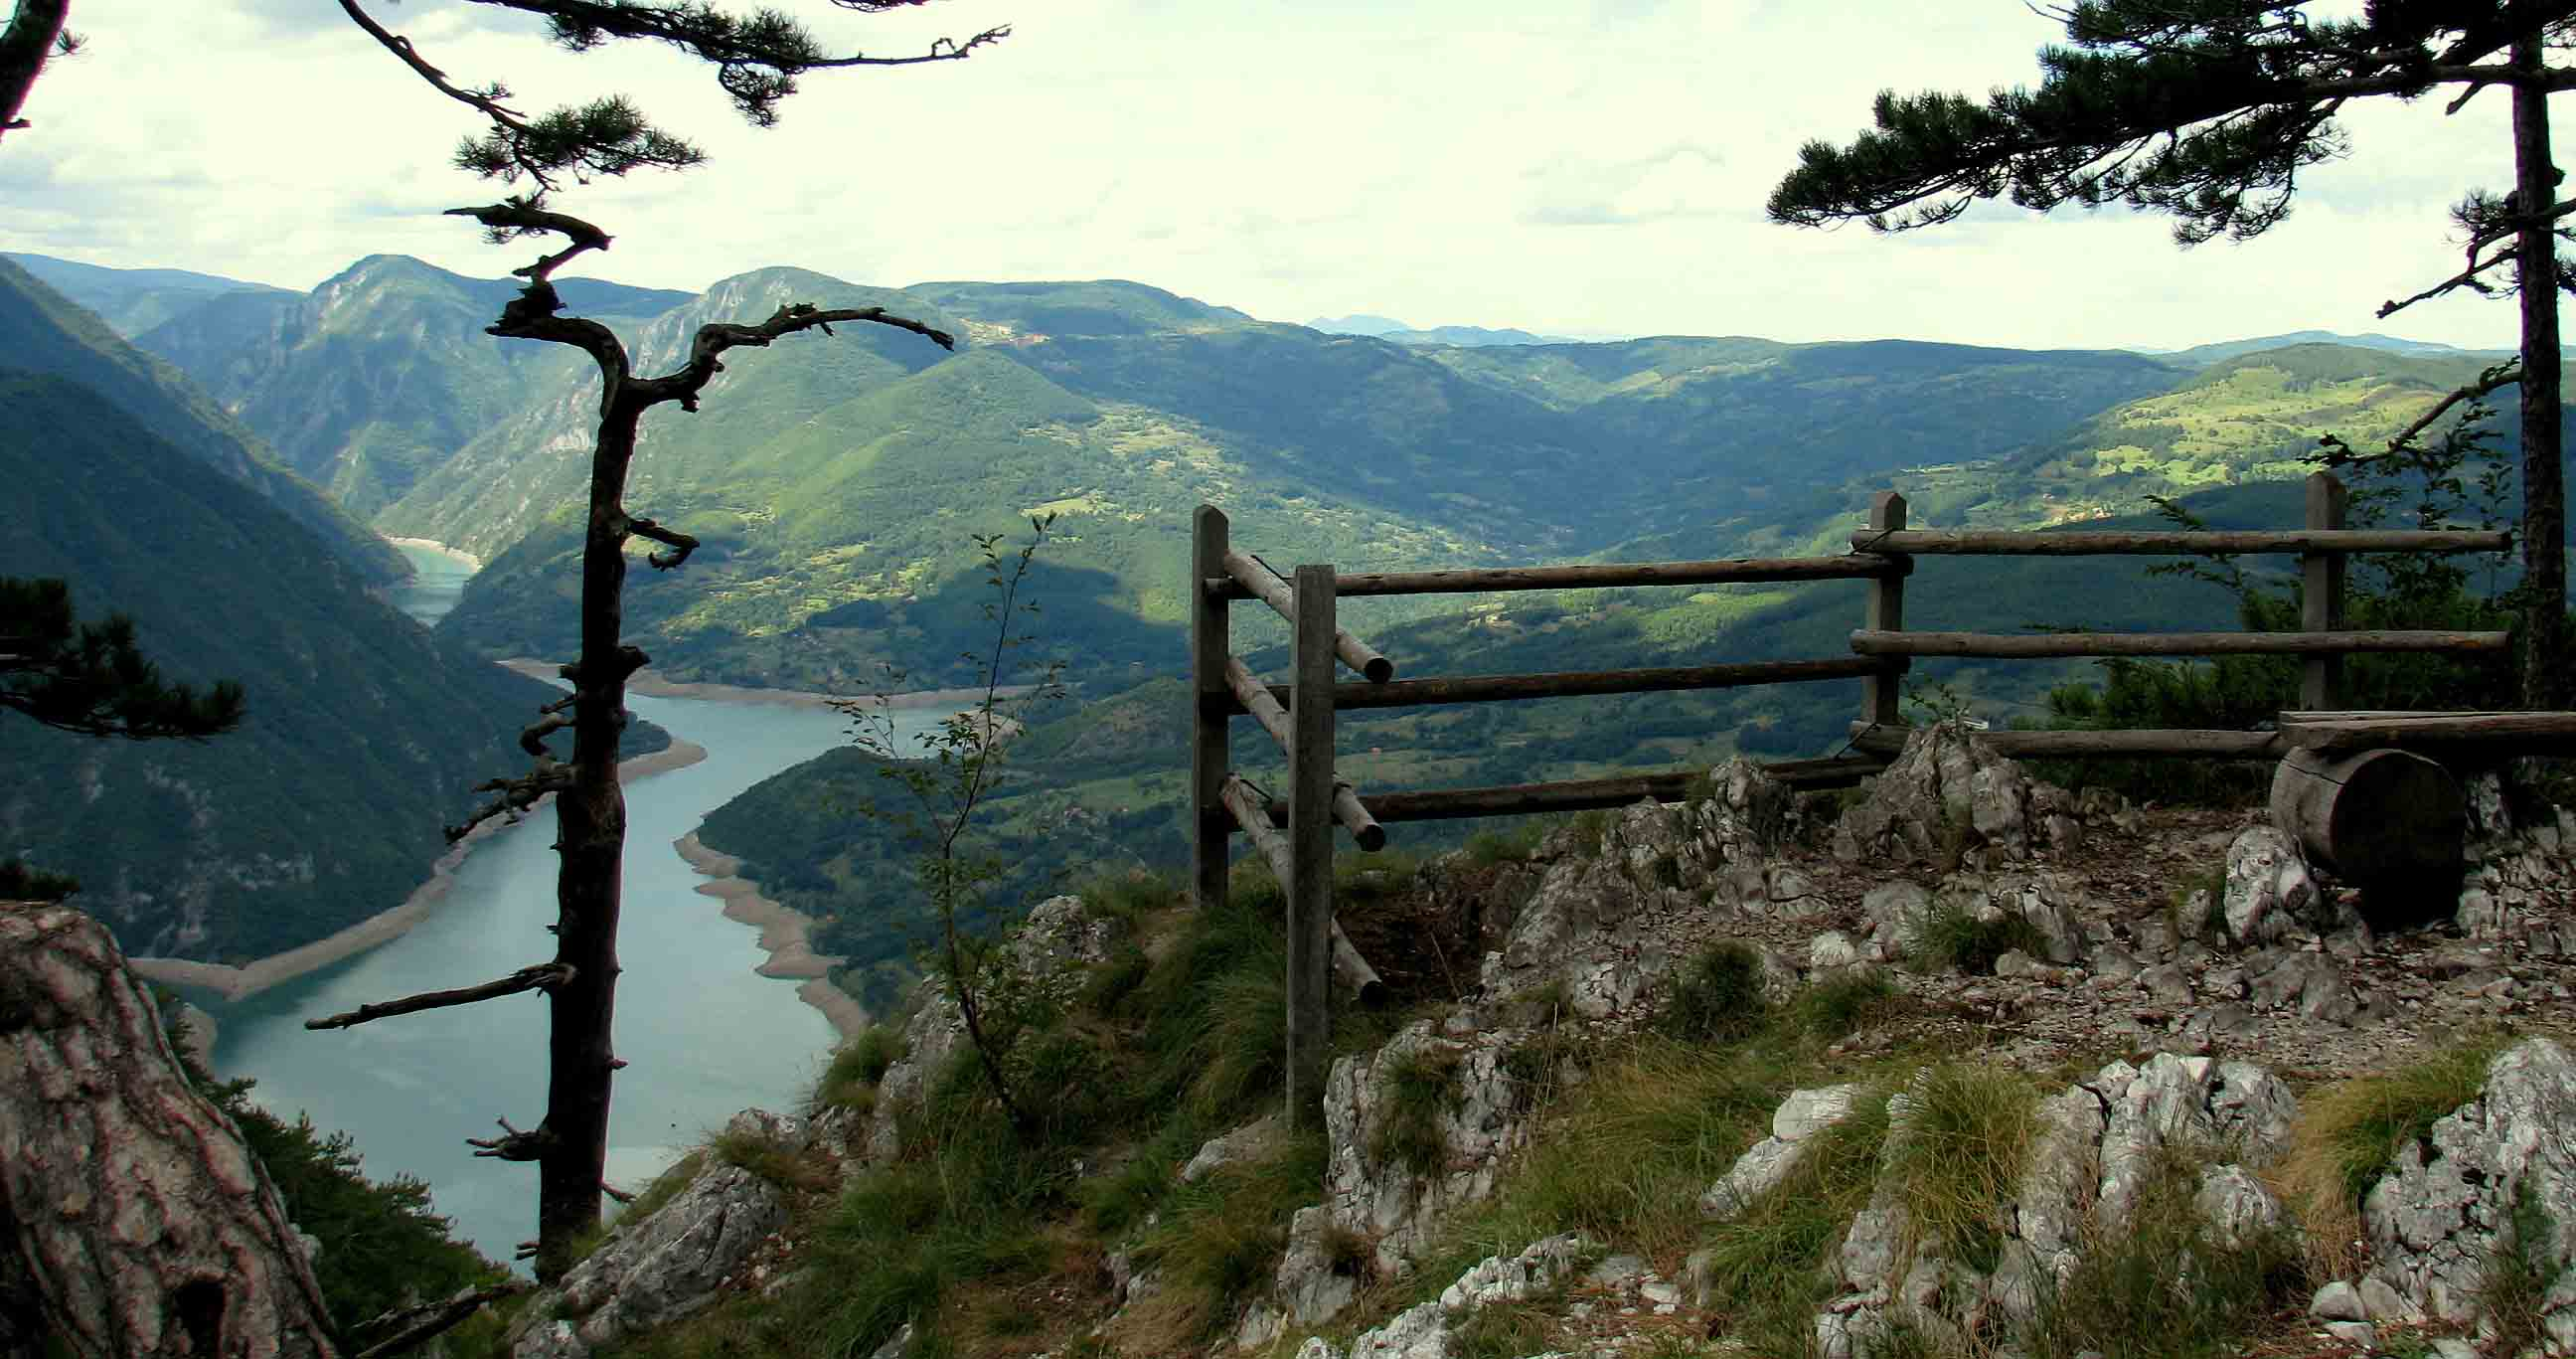 Serbia-travel-Tara-Mountain-Glimpses-of-The-World